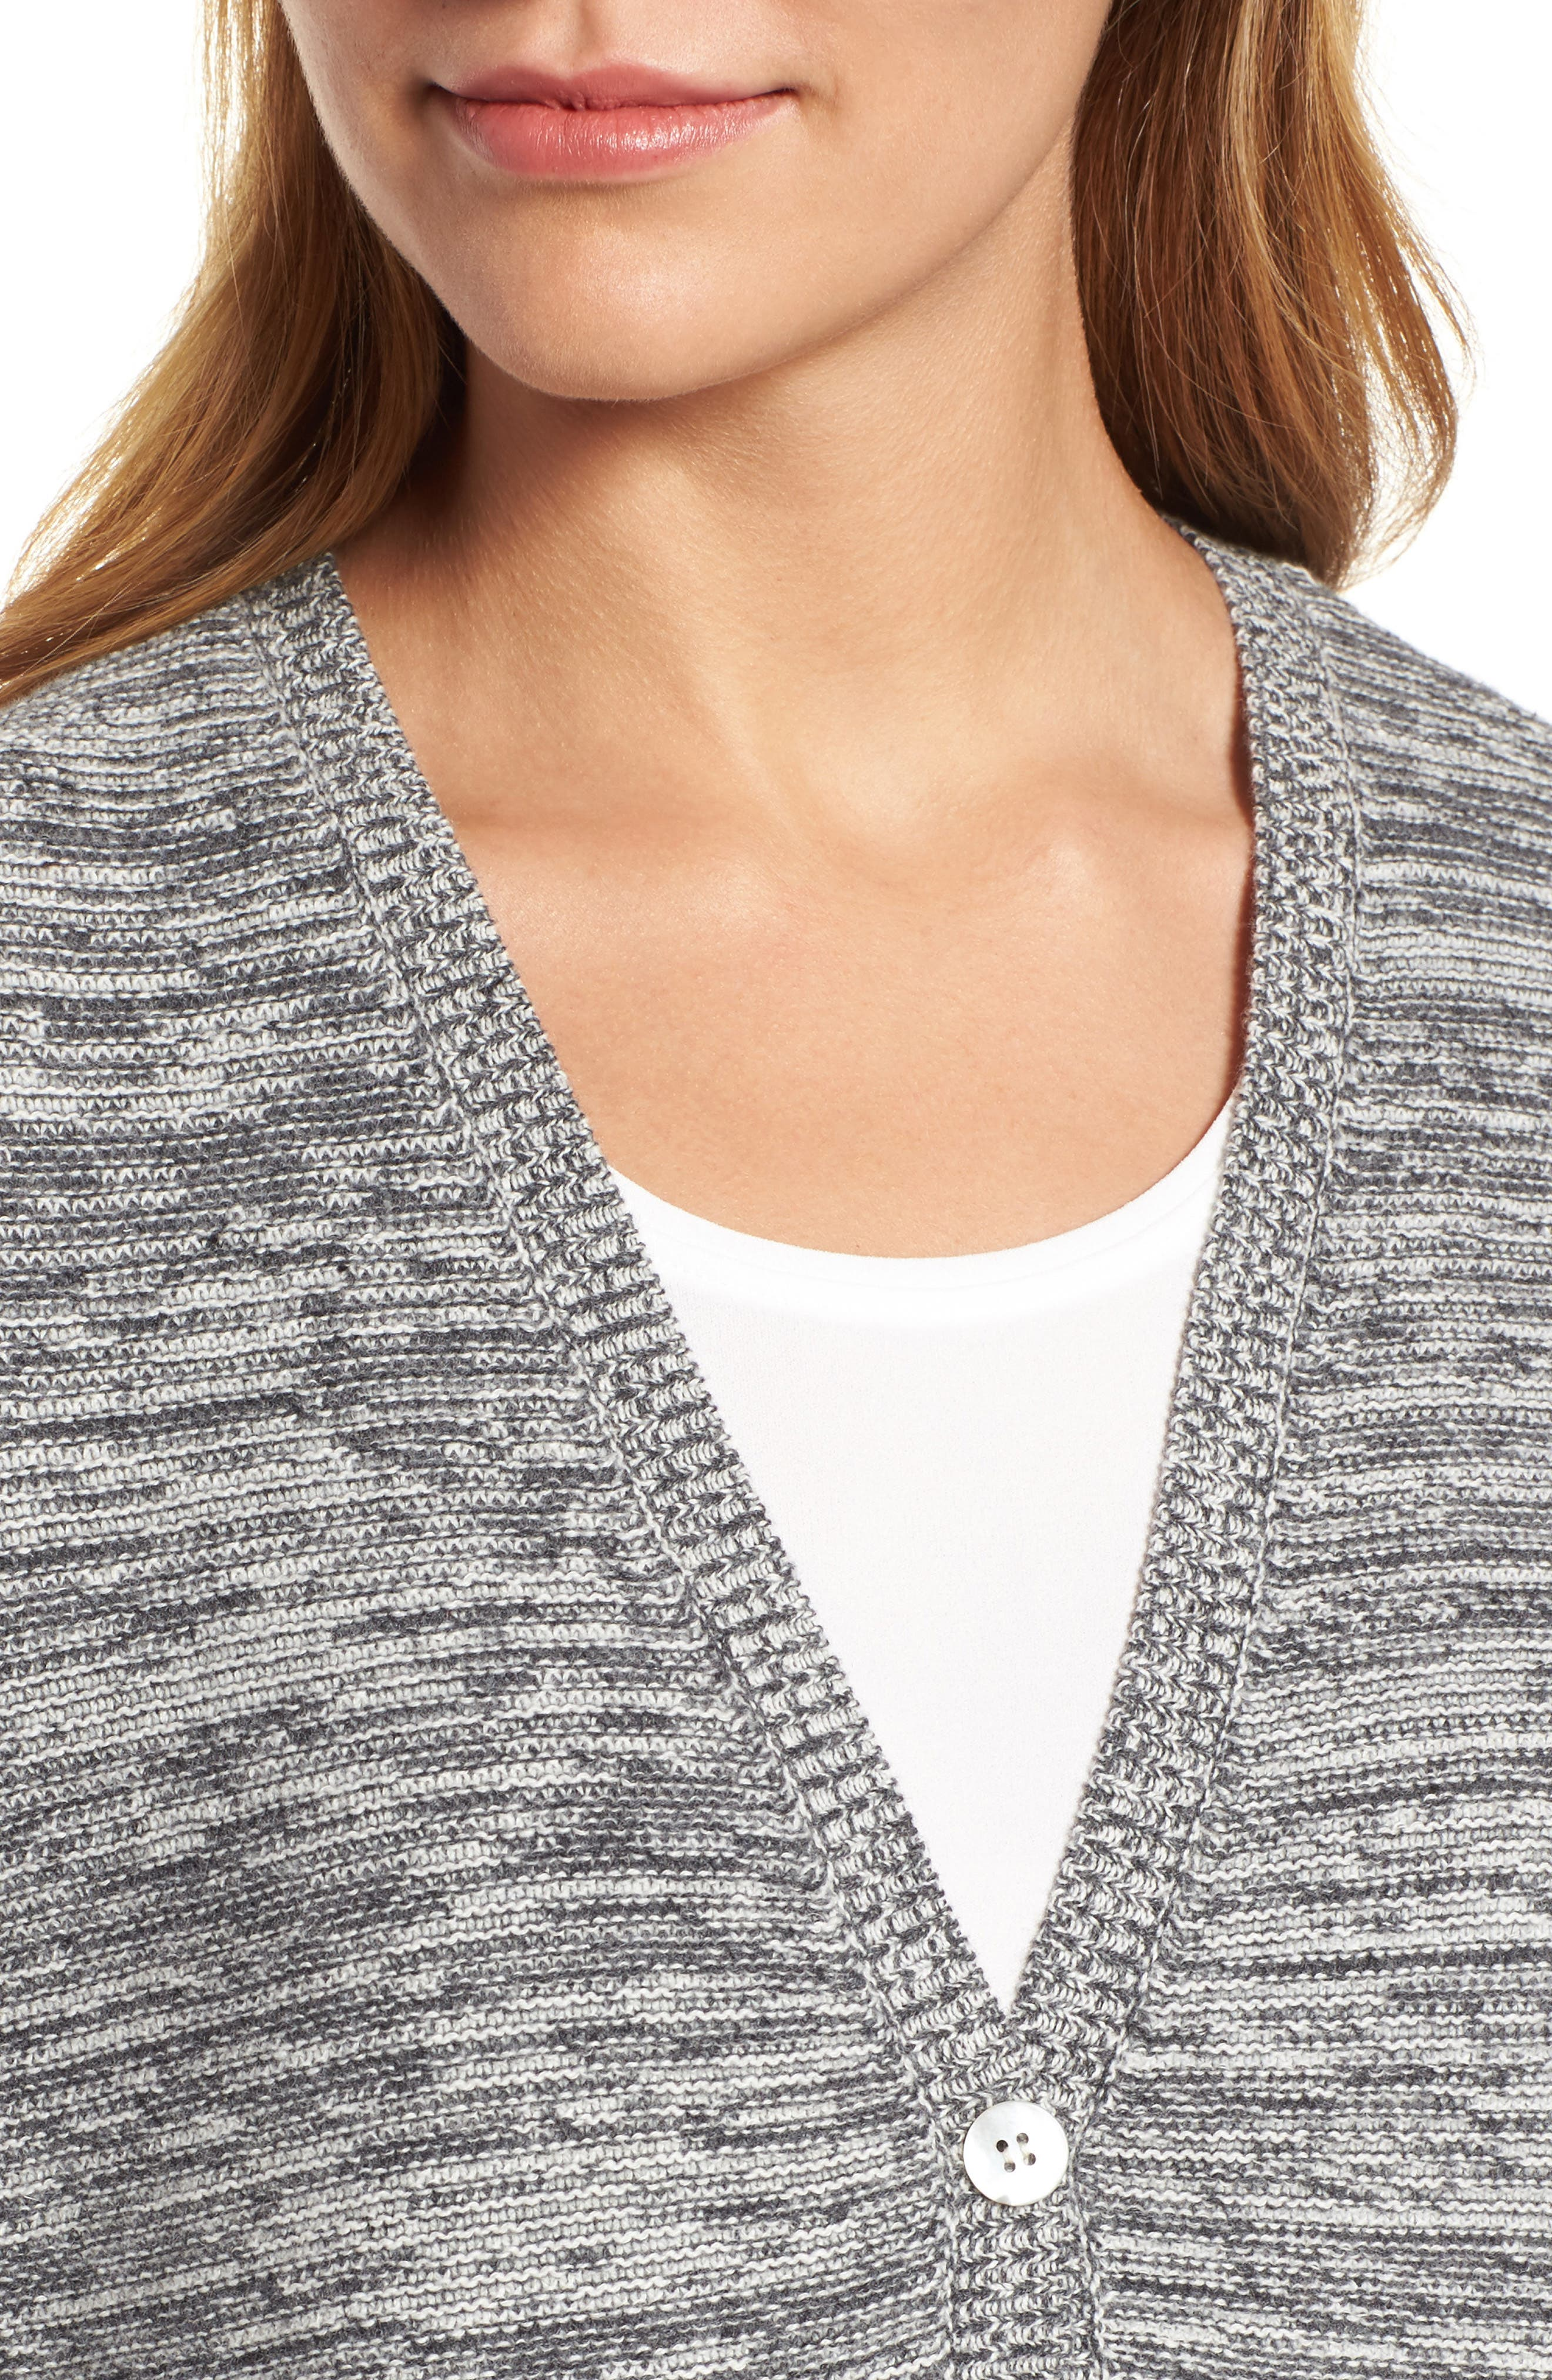 Organic Cotton Blend Boyfriend Cardigan,                             Alternate thumbnail 4, color,                             030